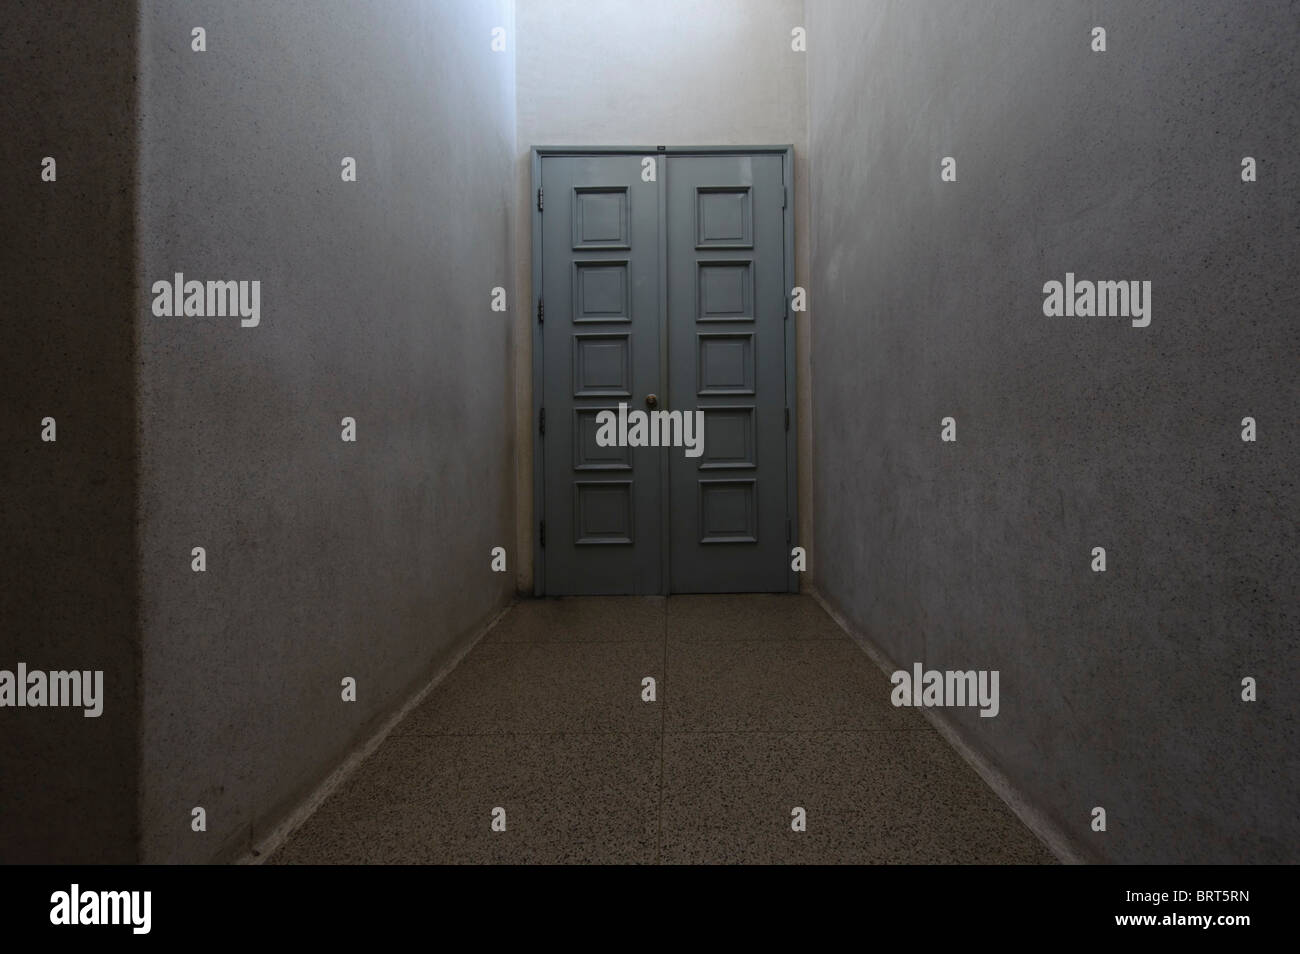 Closed door at the end of a dark corridor - Stock Image